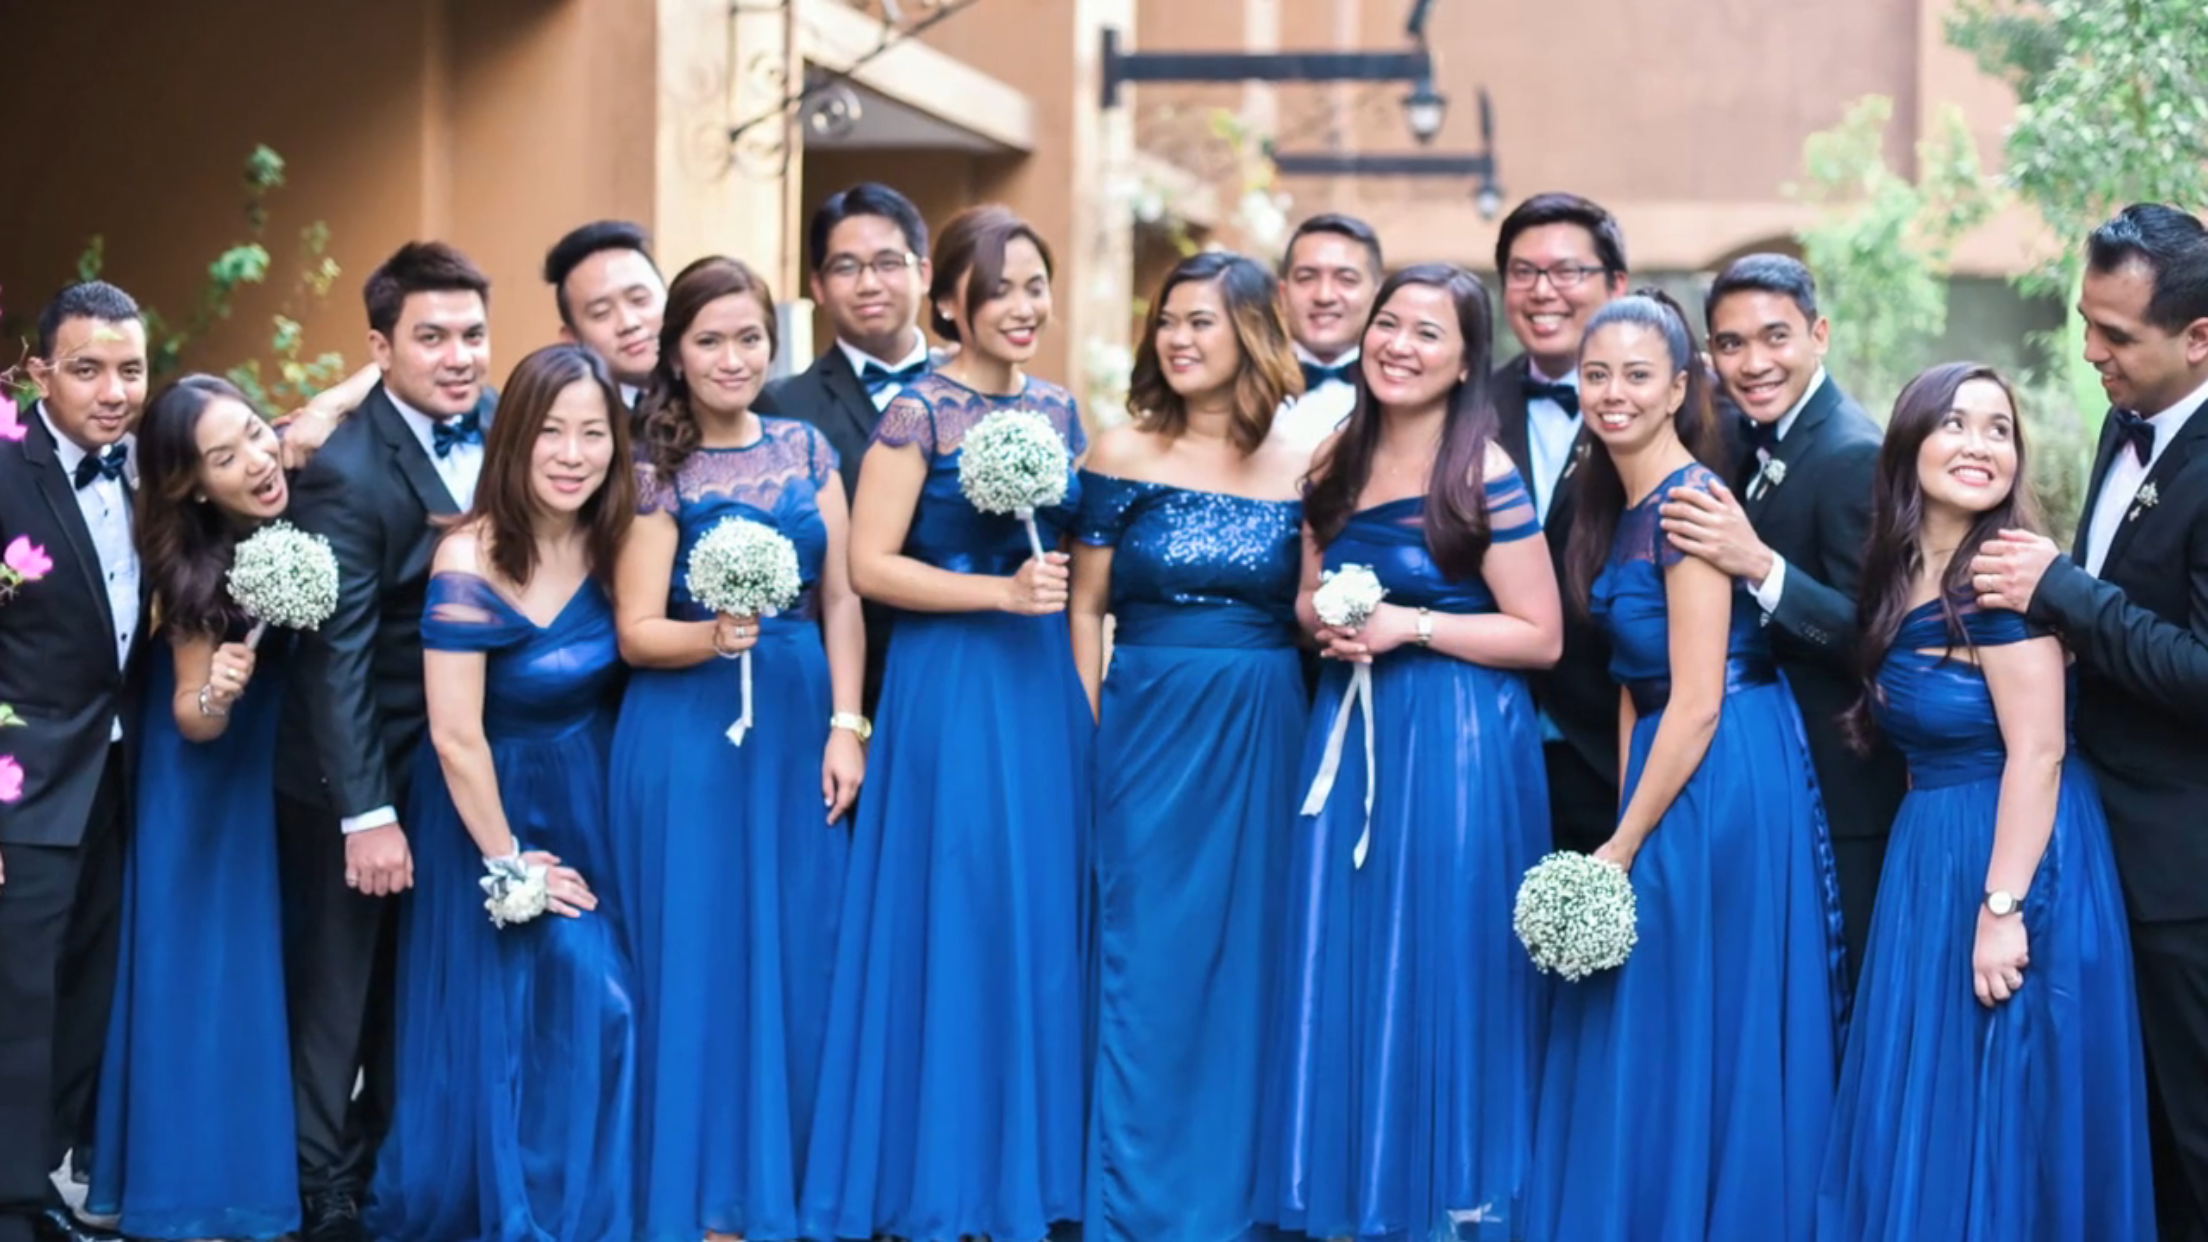 Bridesmaid Million Star Bouquet Secondary Sponsors In Rose Wristlet Both Midnight Blue Gown Silver And Gold Motif Wedding